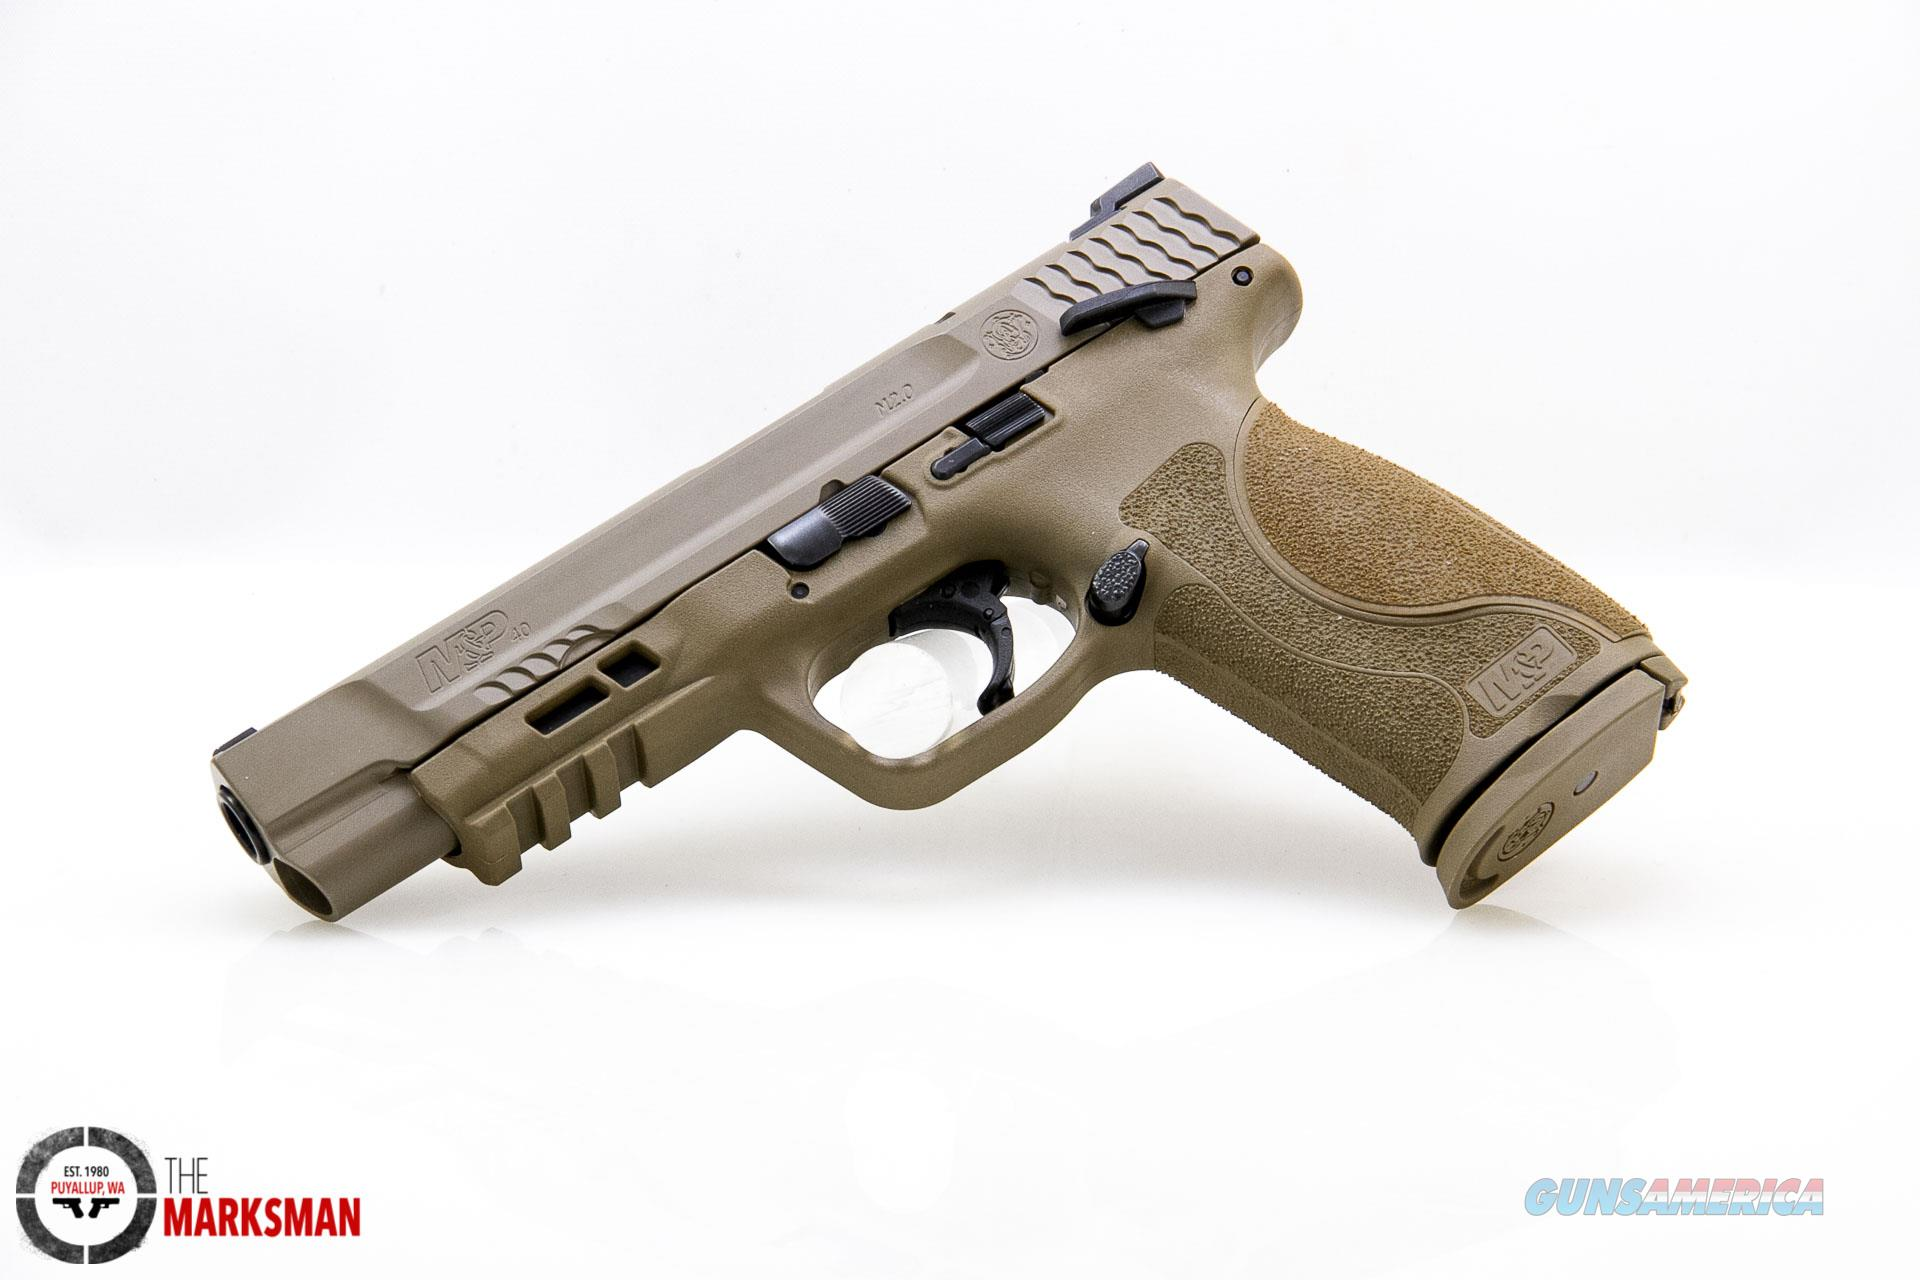 Smith and Wesson M&P40 M2.0 .40 S&W NEW Flat Dark Earth, Thumb Safety  Guns > Pistols > Smith & Wesson Pistols - Autos > Polymer Frame